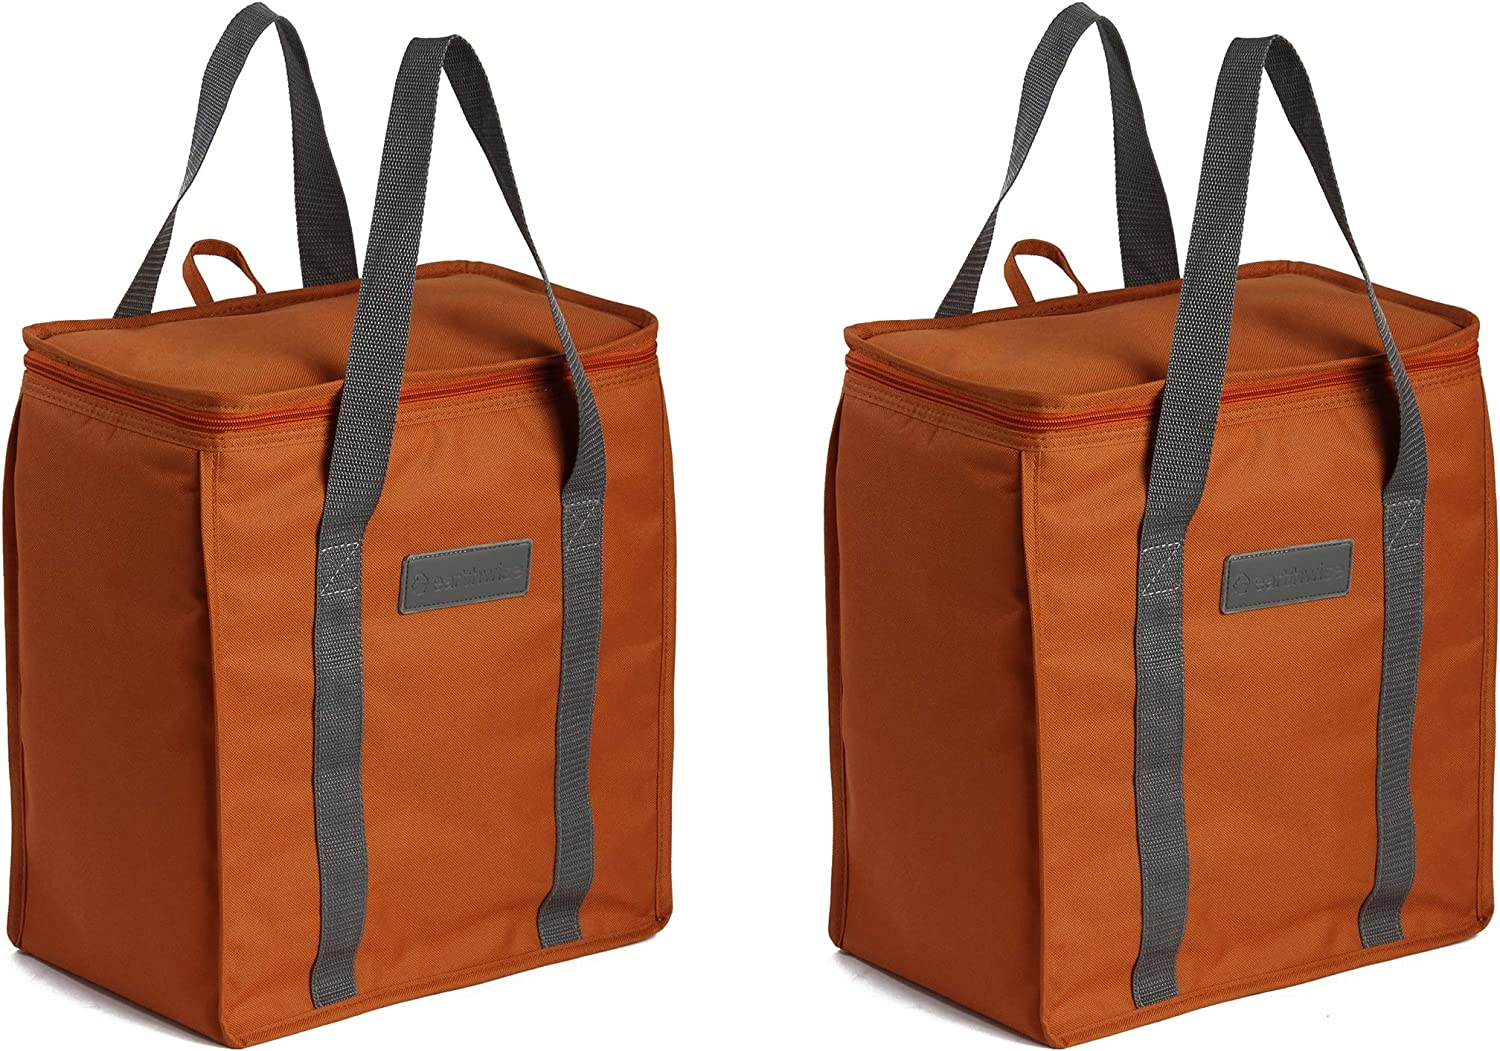 Earthwise 2021 new Reusable Insulated Grocery Bags Therm Duty Heavy Nylon Seattle Mall